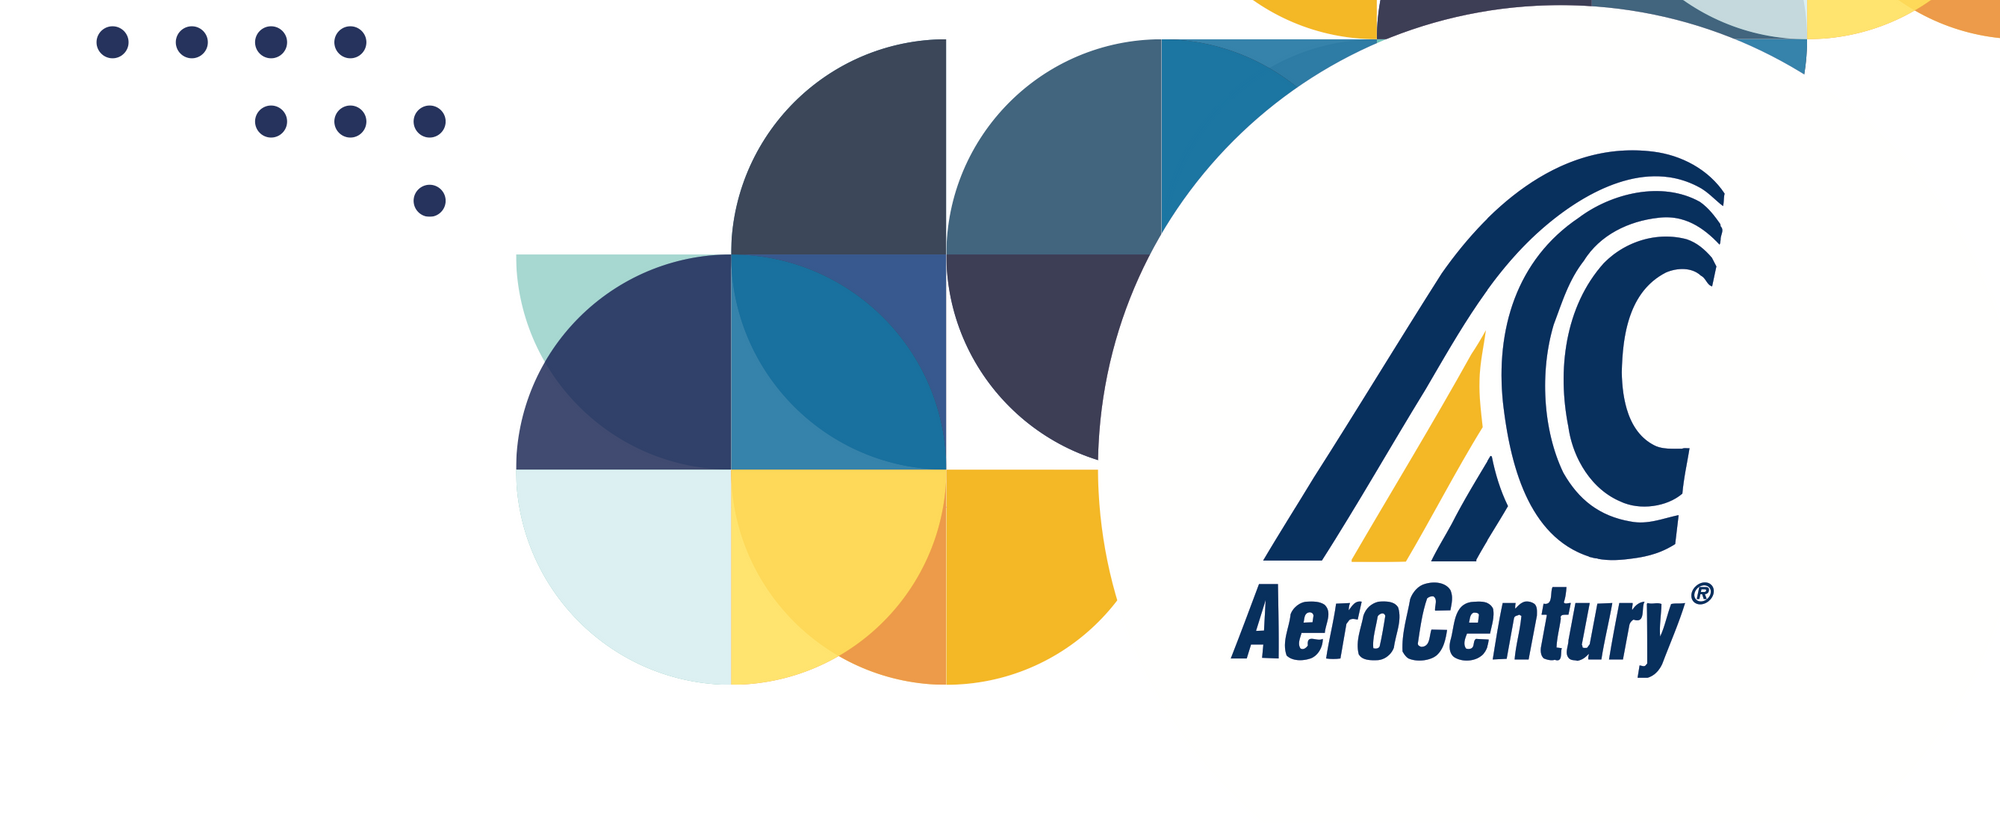 AeroCentury Corp. Reports Third Quarter 2020 Results